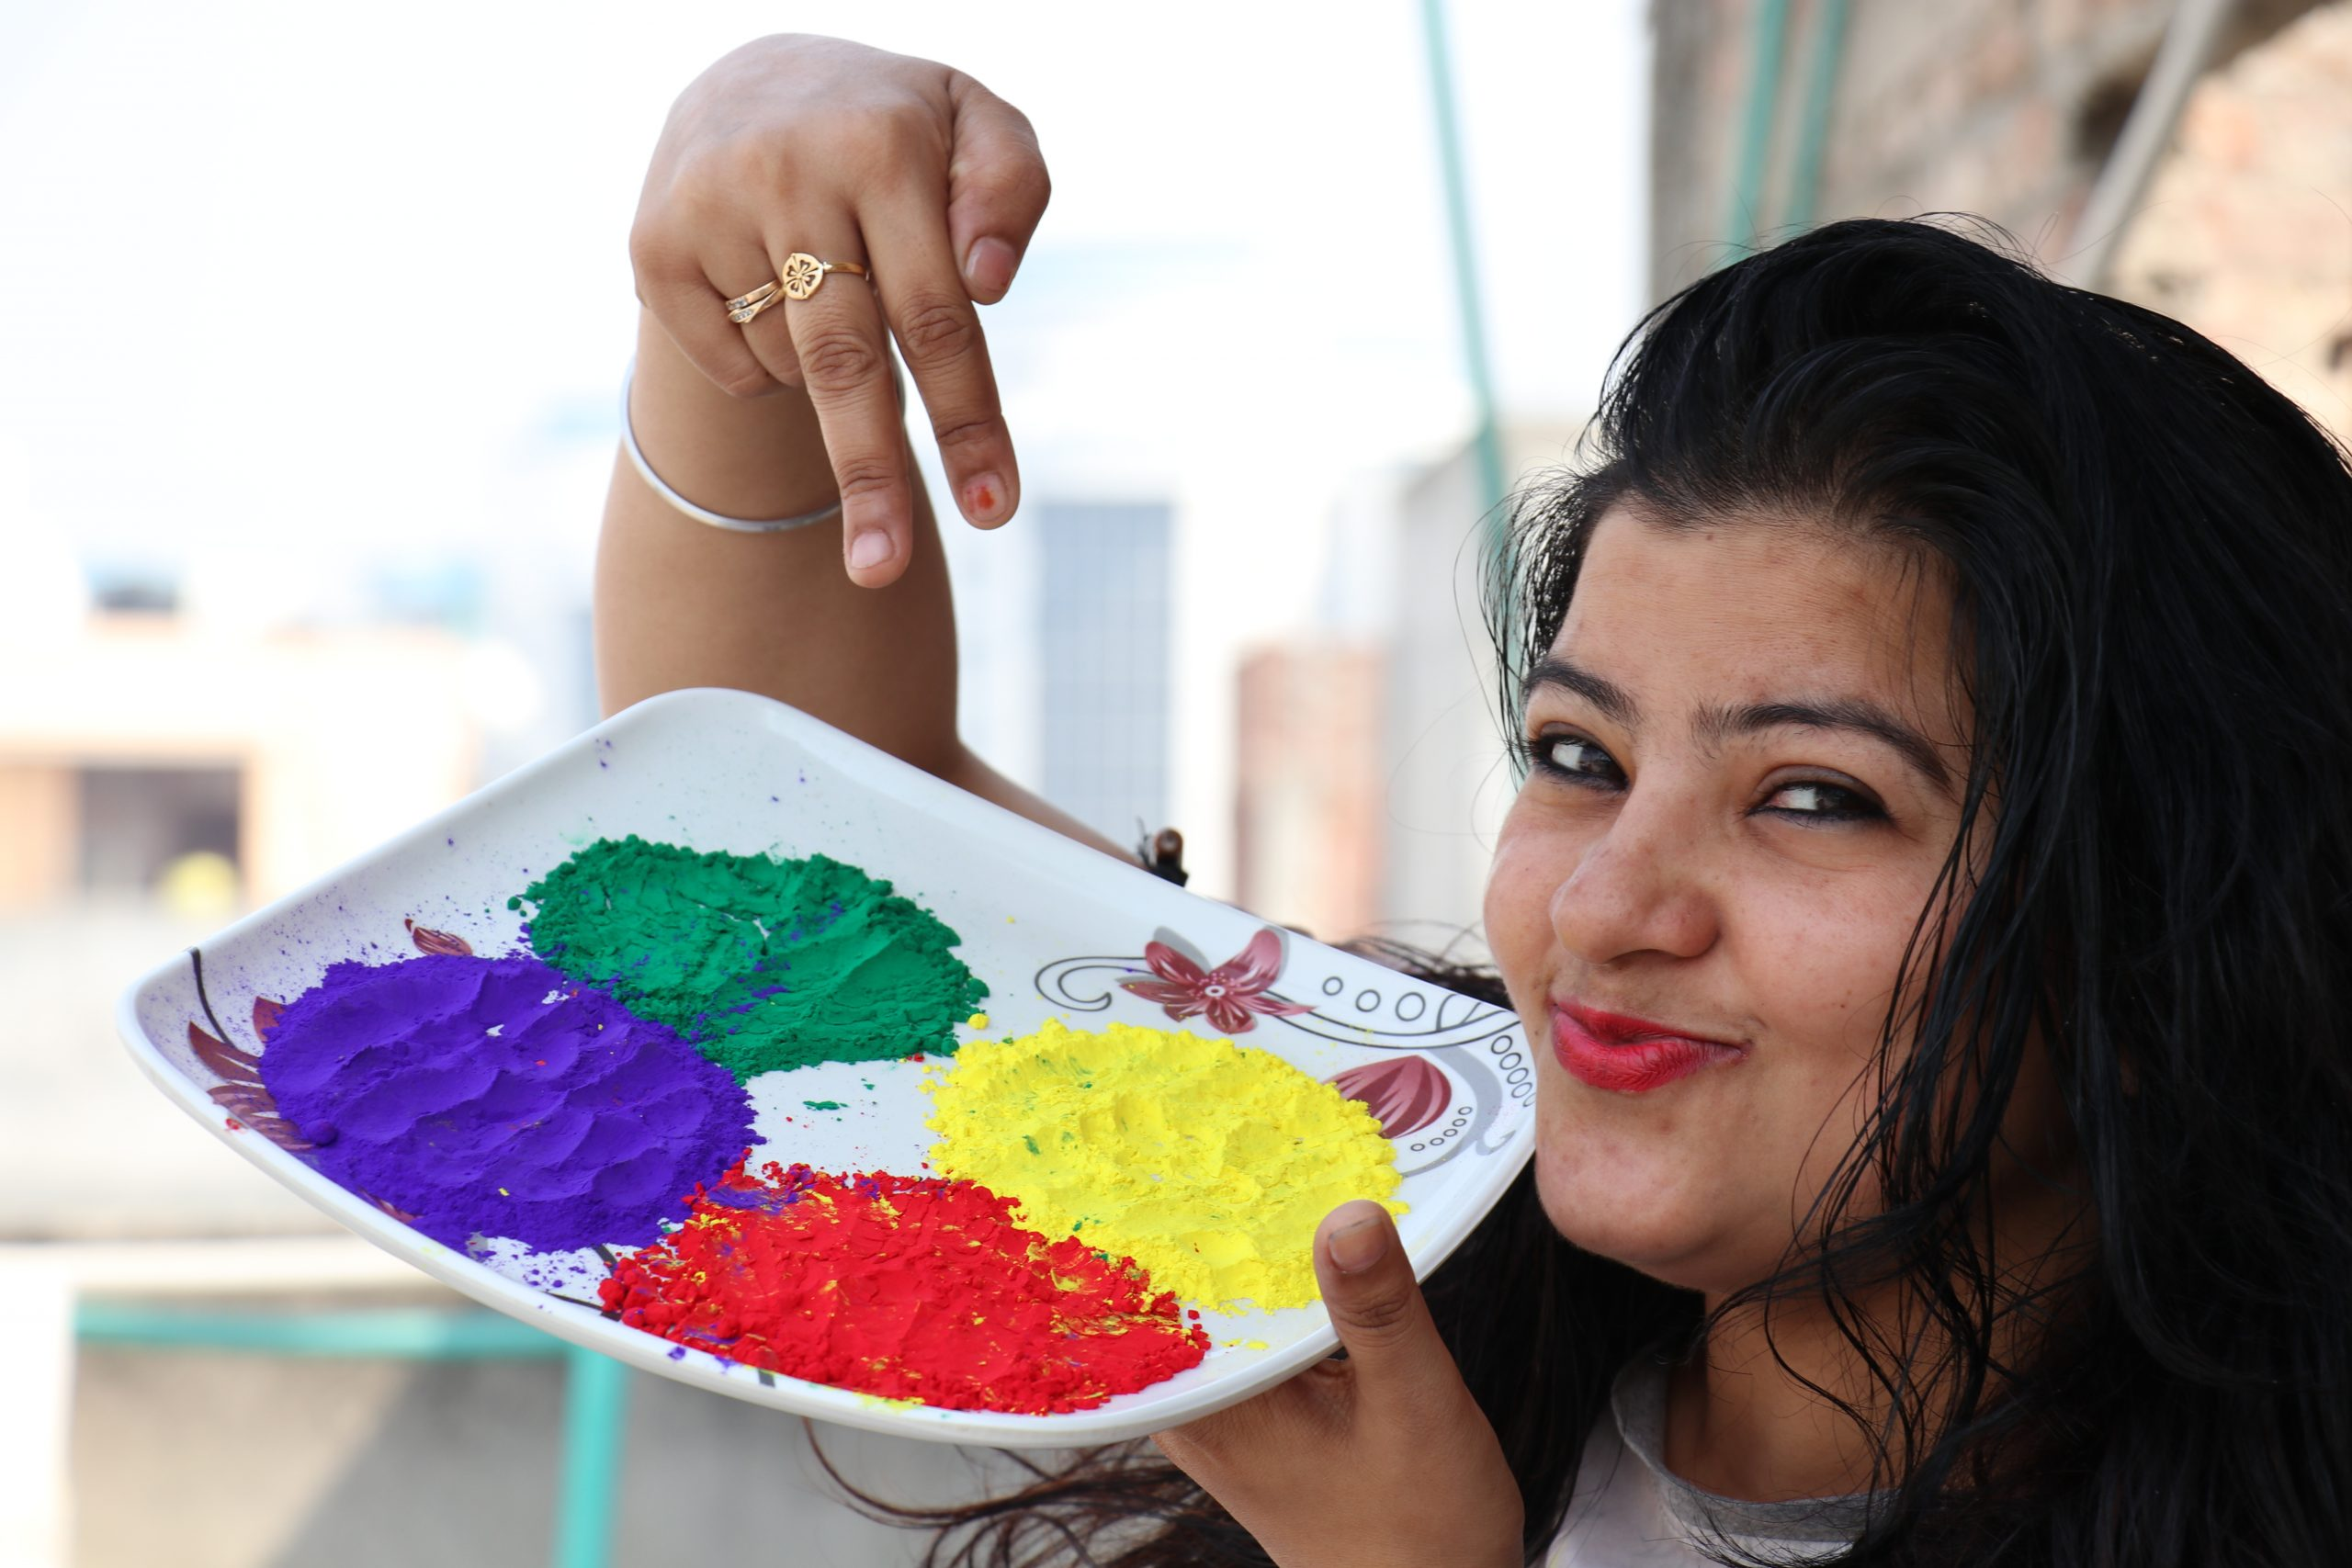 Girl pointing towards plate full of colors